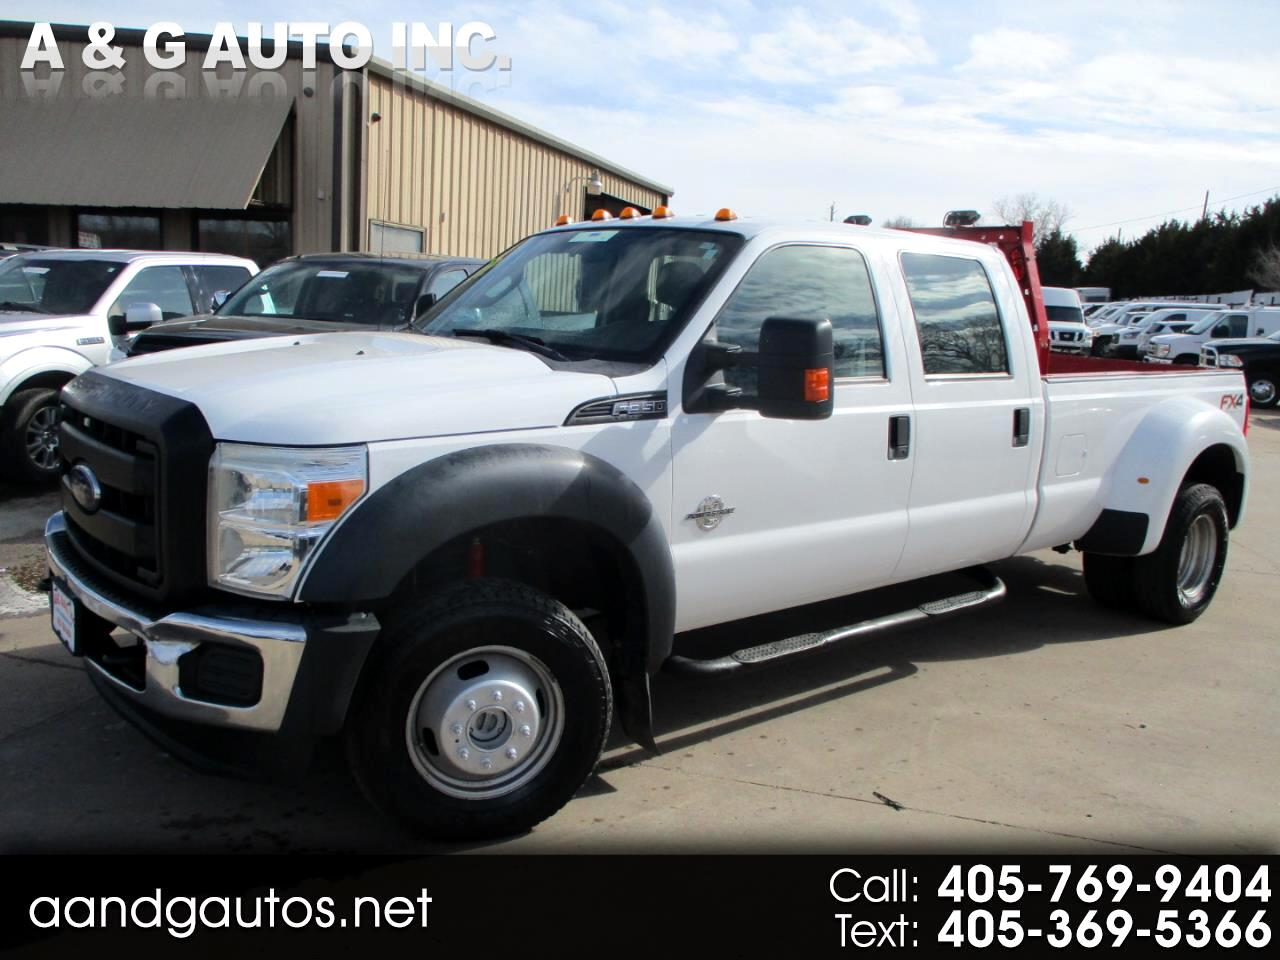 Ford F-350 SD XLT Crew Cab Long Bed DRW 4WD 2015